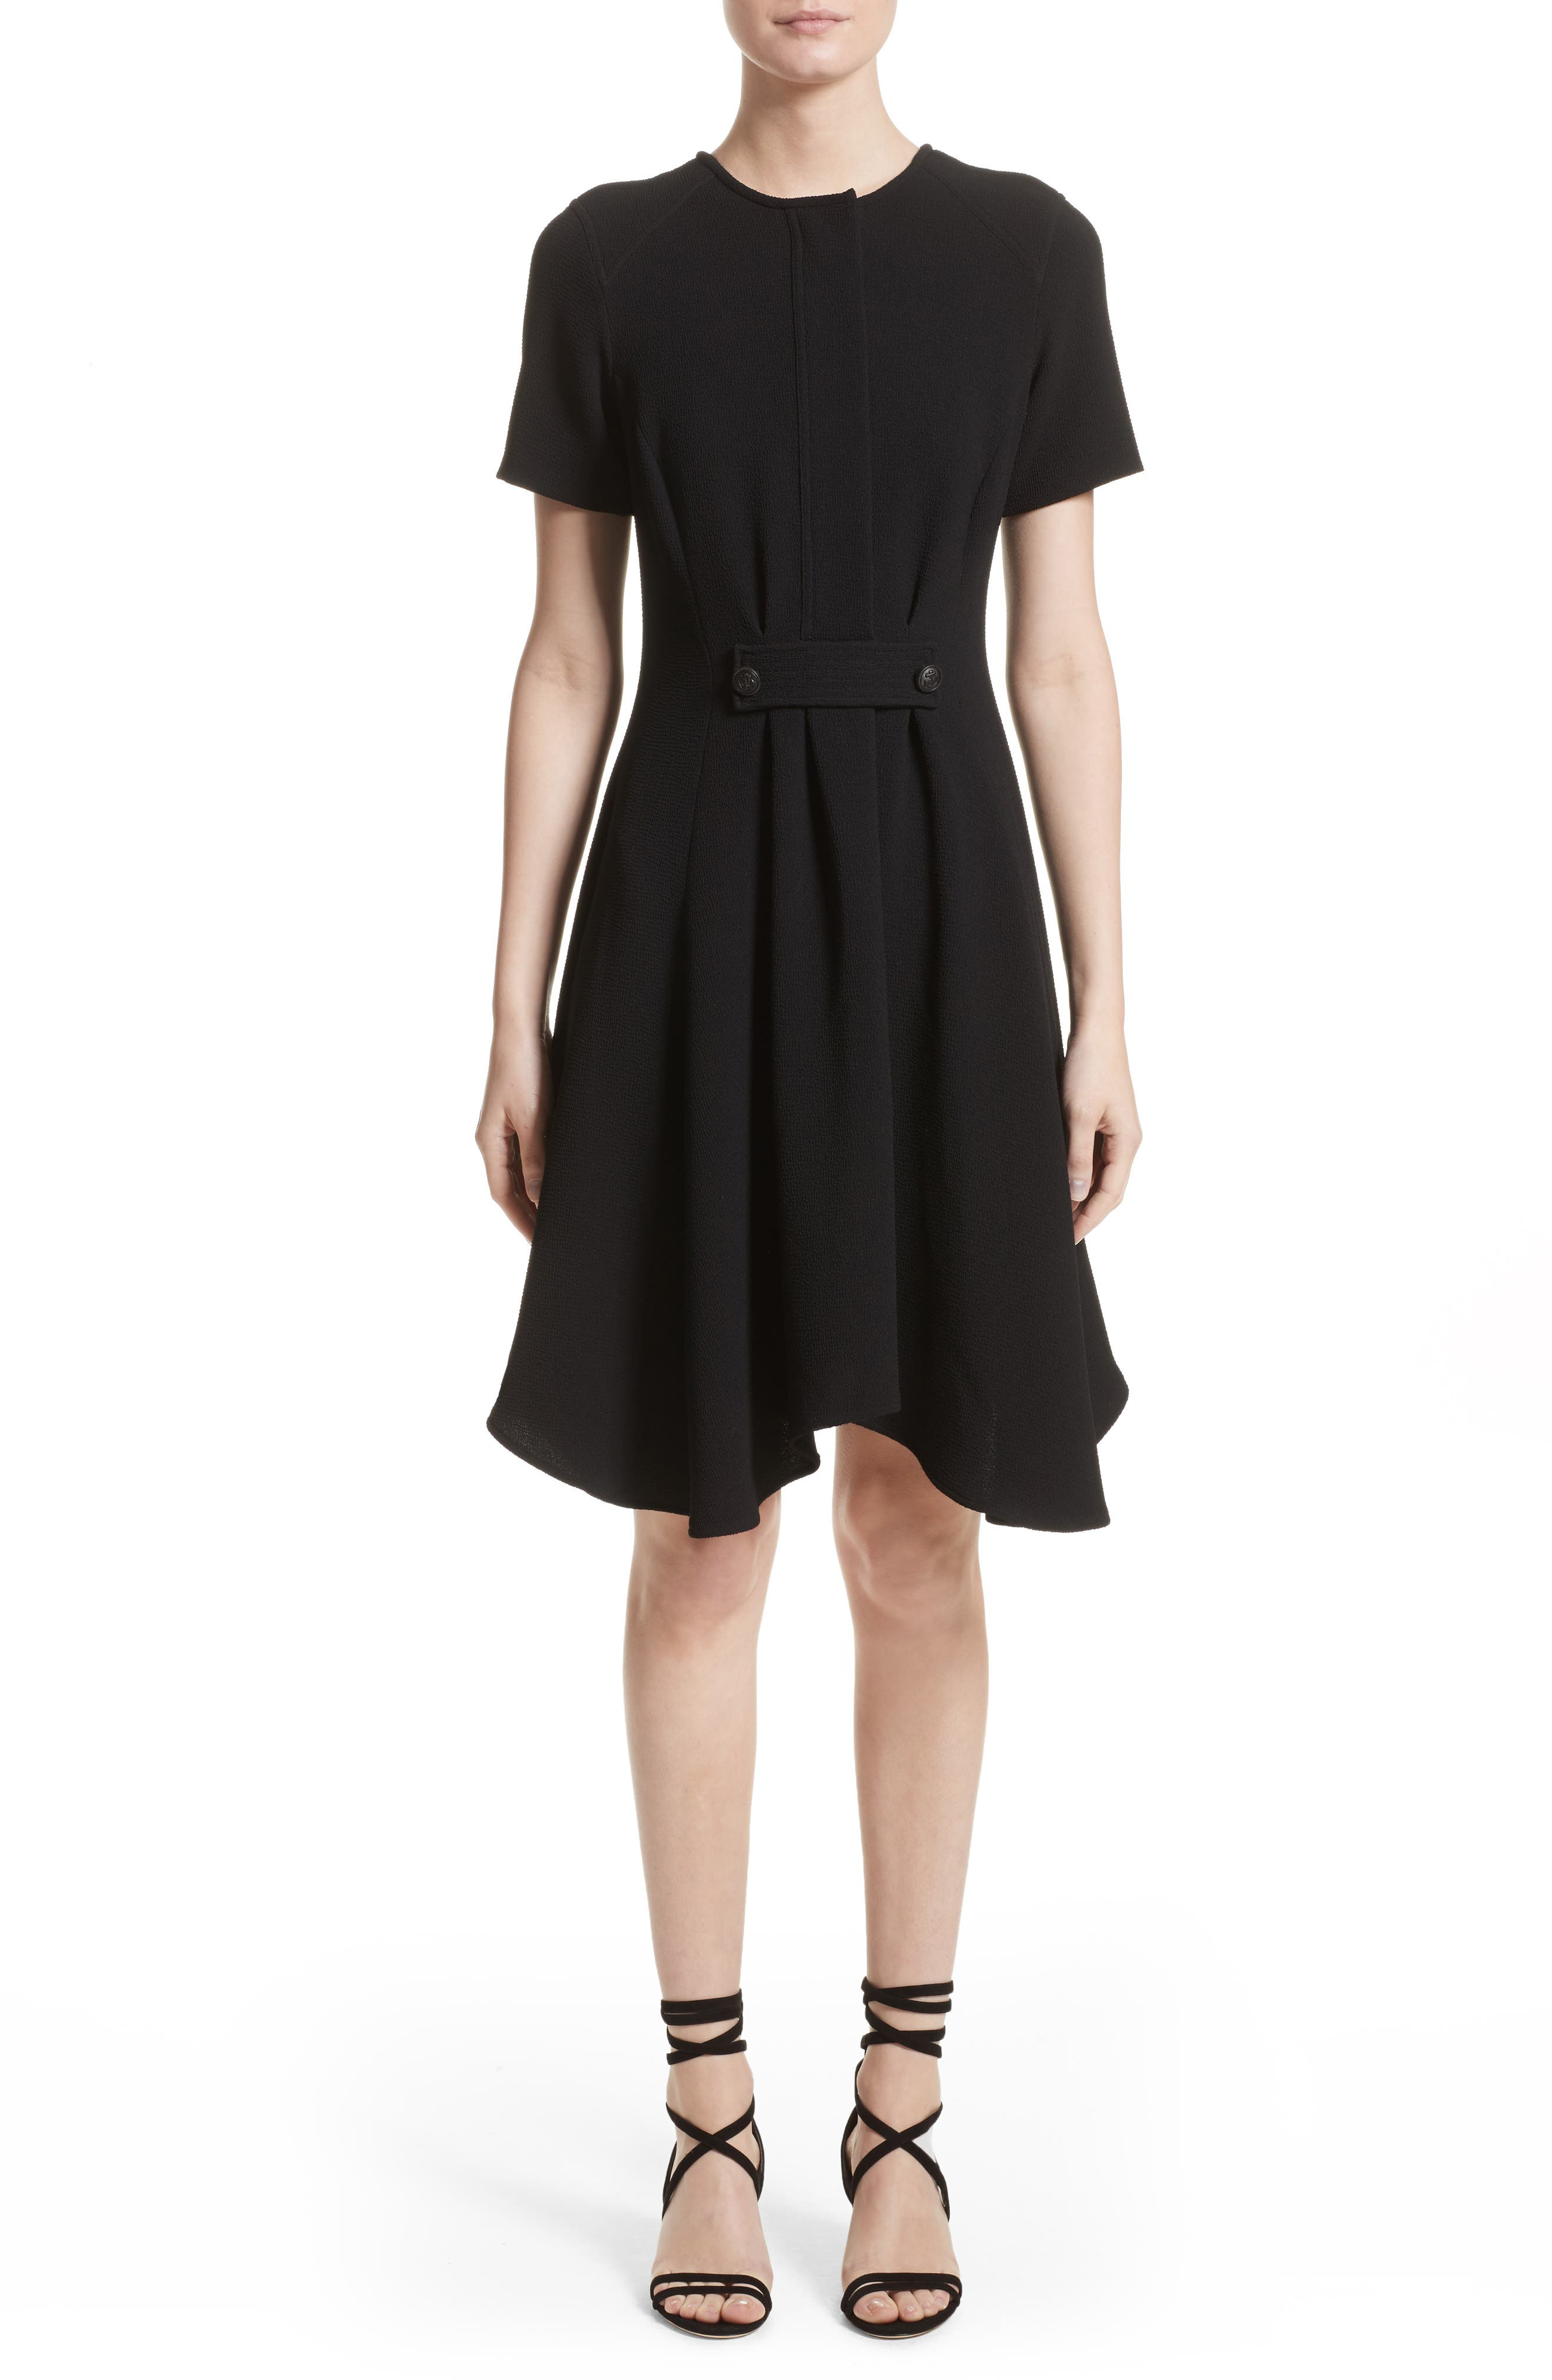 Maressa Dress,                         Main,                         color, Black